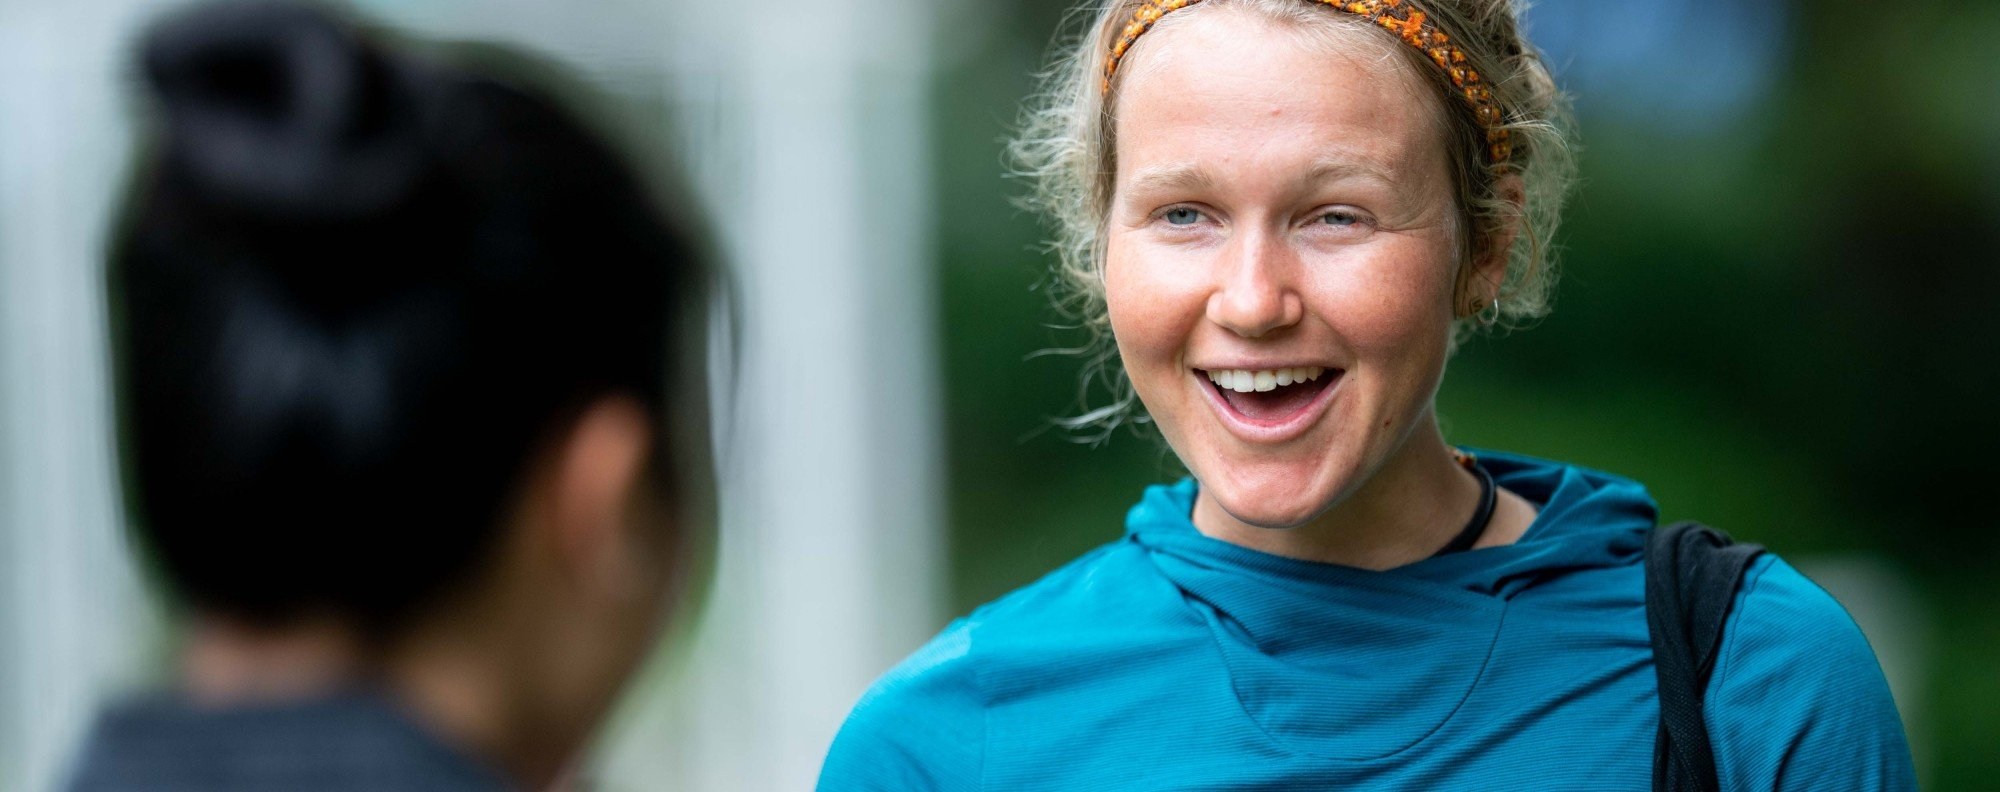 Lucy Bartholomew is one of the world's top trail runners, but the thought of Hong Kong's brutal stair climbs still give her goose bumps. Photos: Salomon